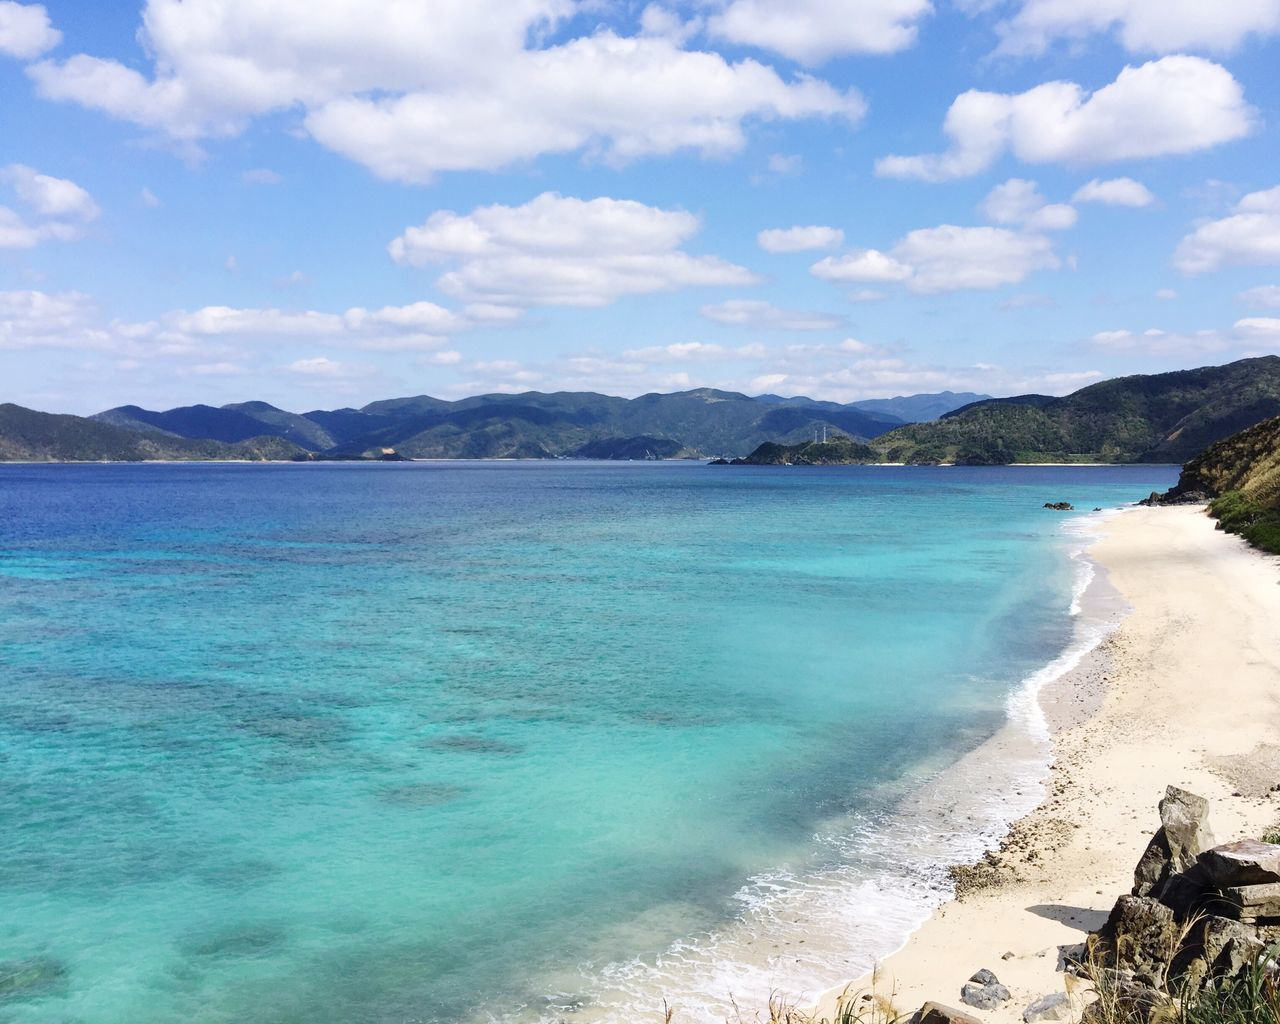 Sea Water Sky Scenics Beauty In Nature Beach Nature Coastline Tourism Cloud - Sky Travel Destinations Mountain Idyllic Outdoors No People Day Turquoise Kagoshima Amami Island